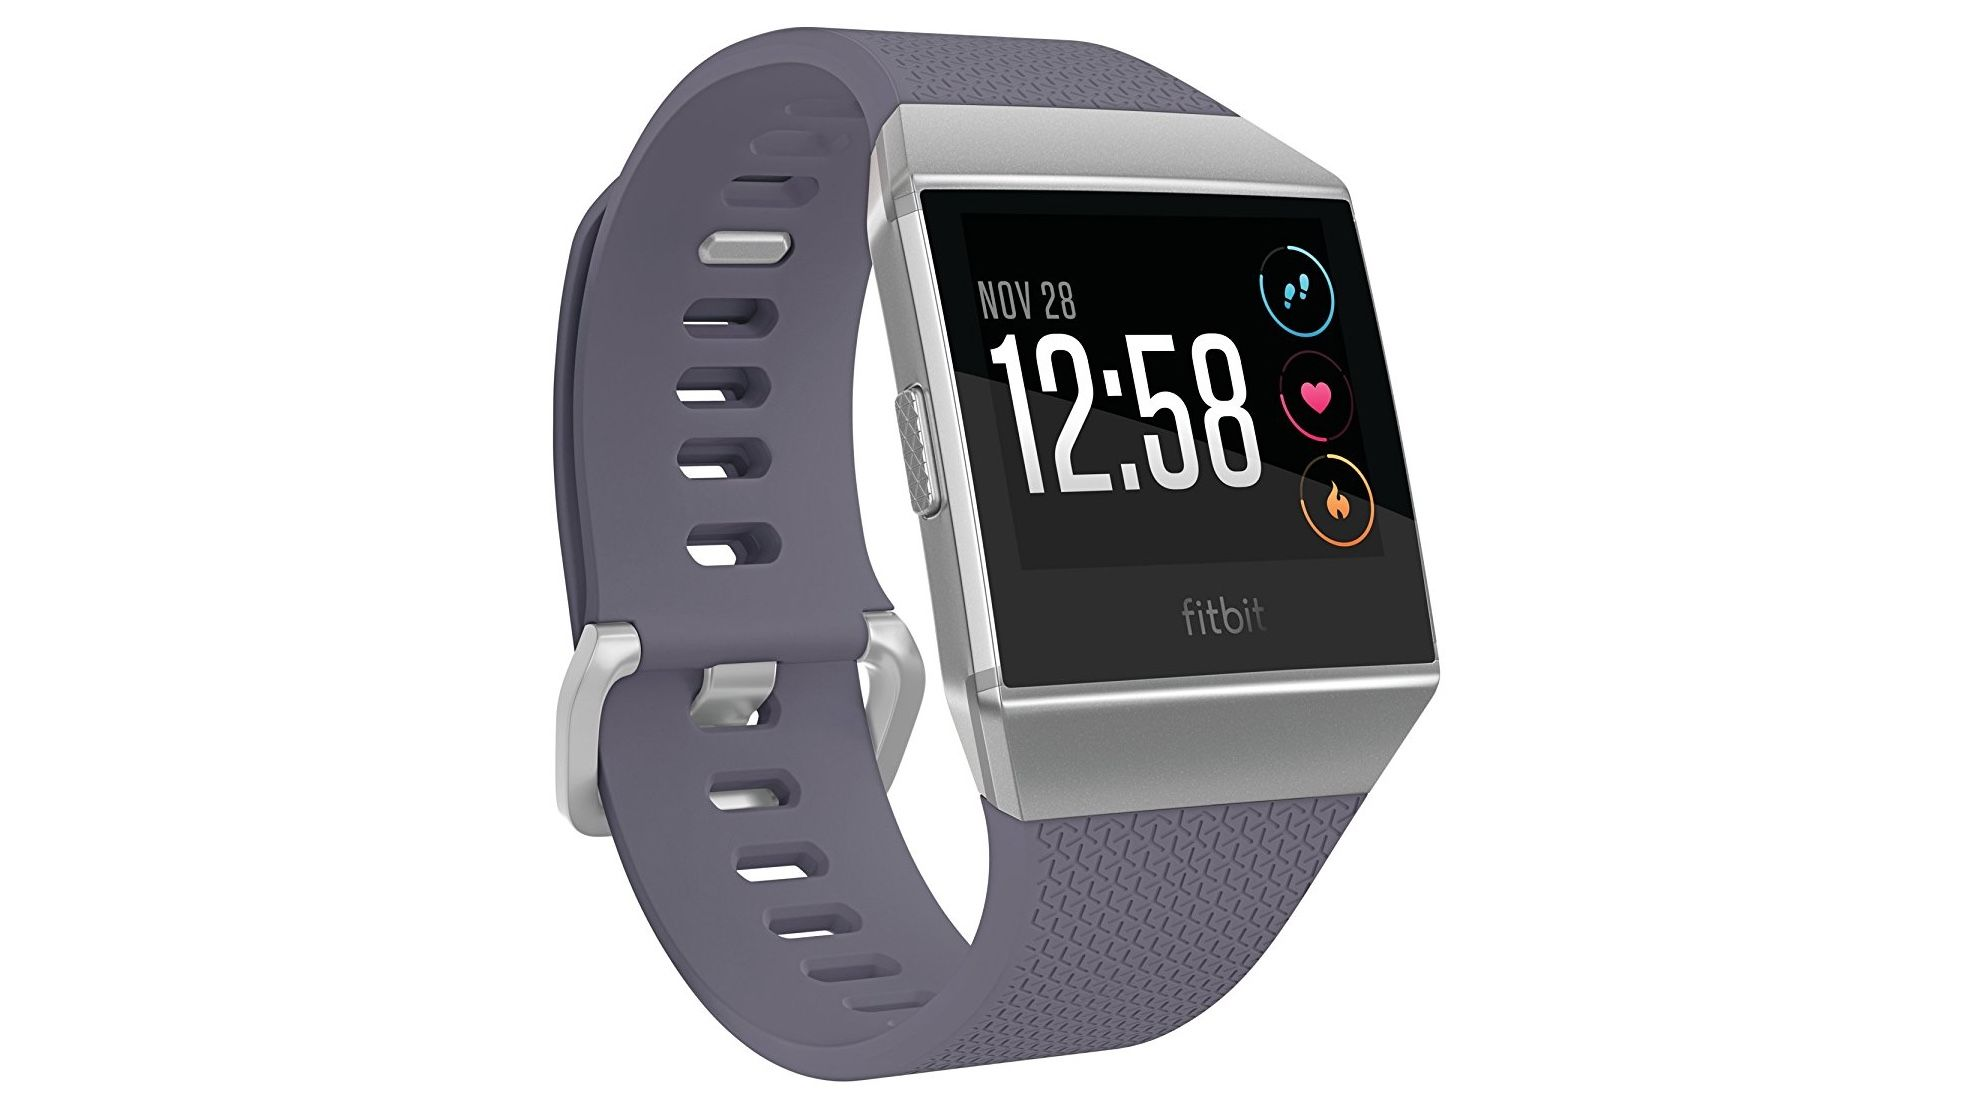 100 Tech Gadgets We Tested and Loved Fitness smart watch